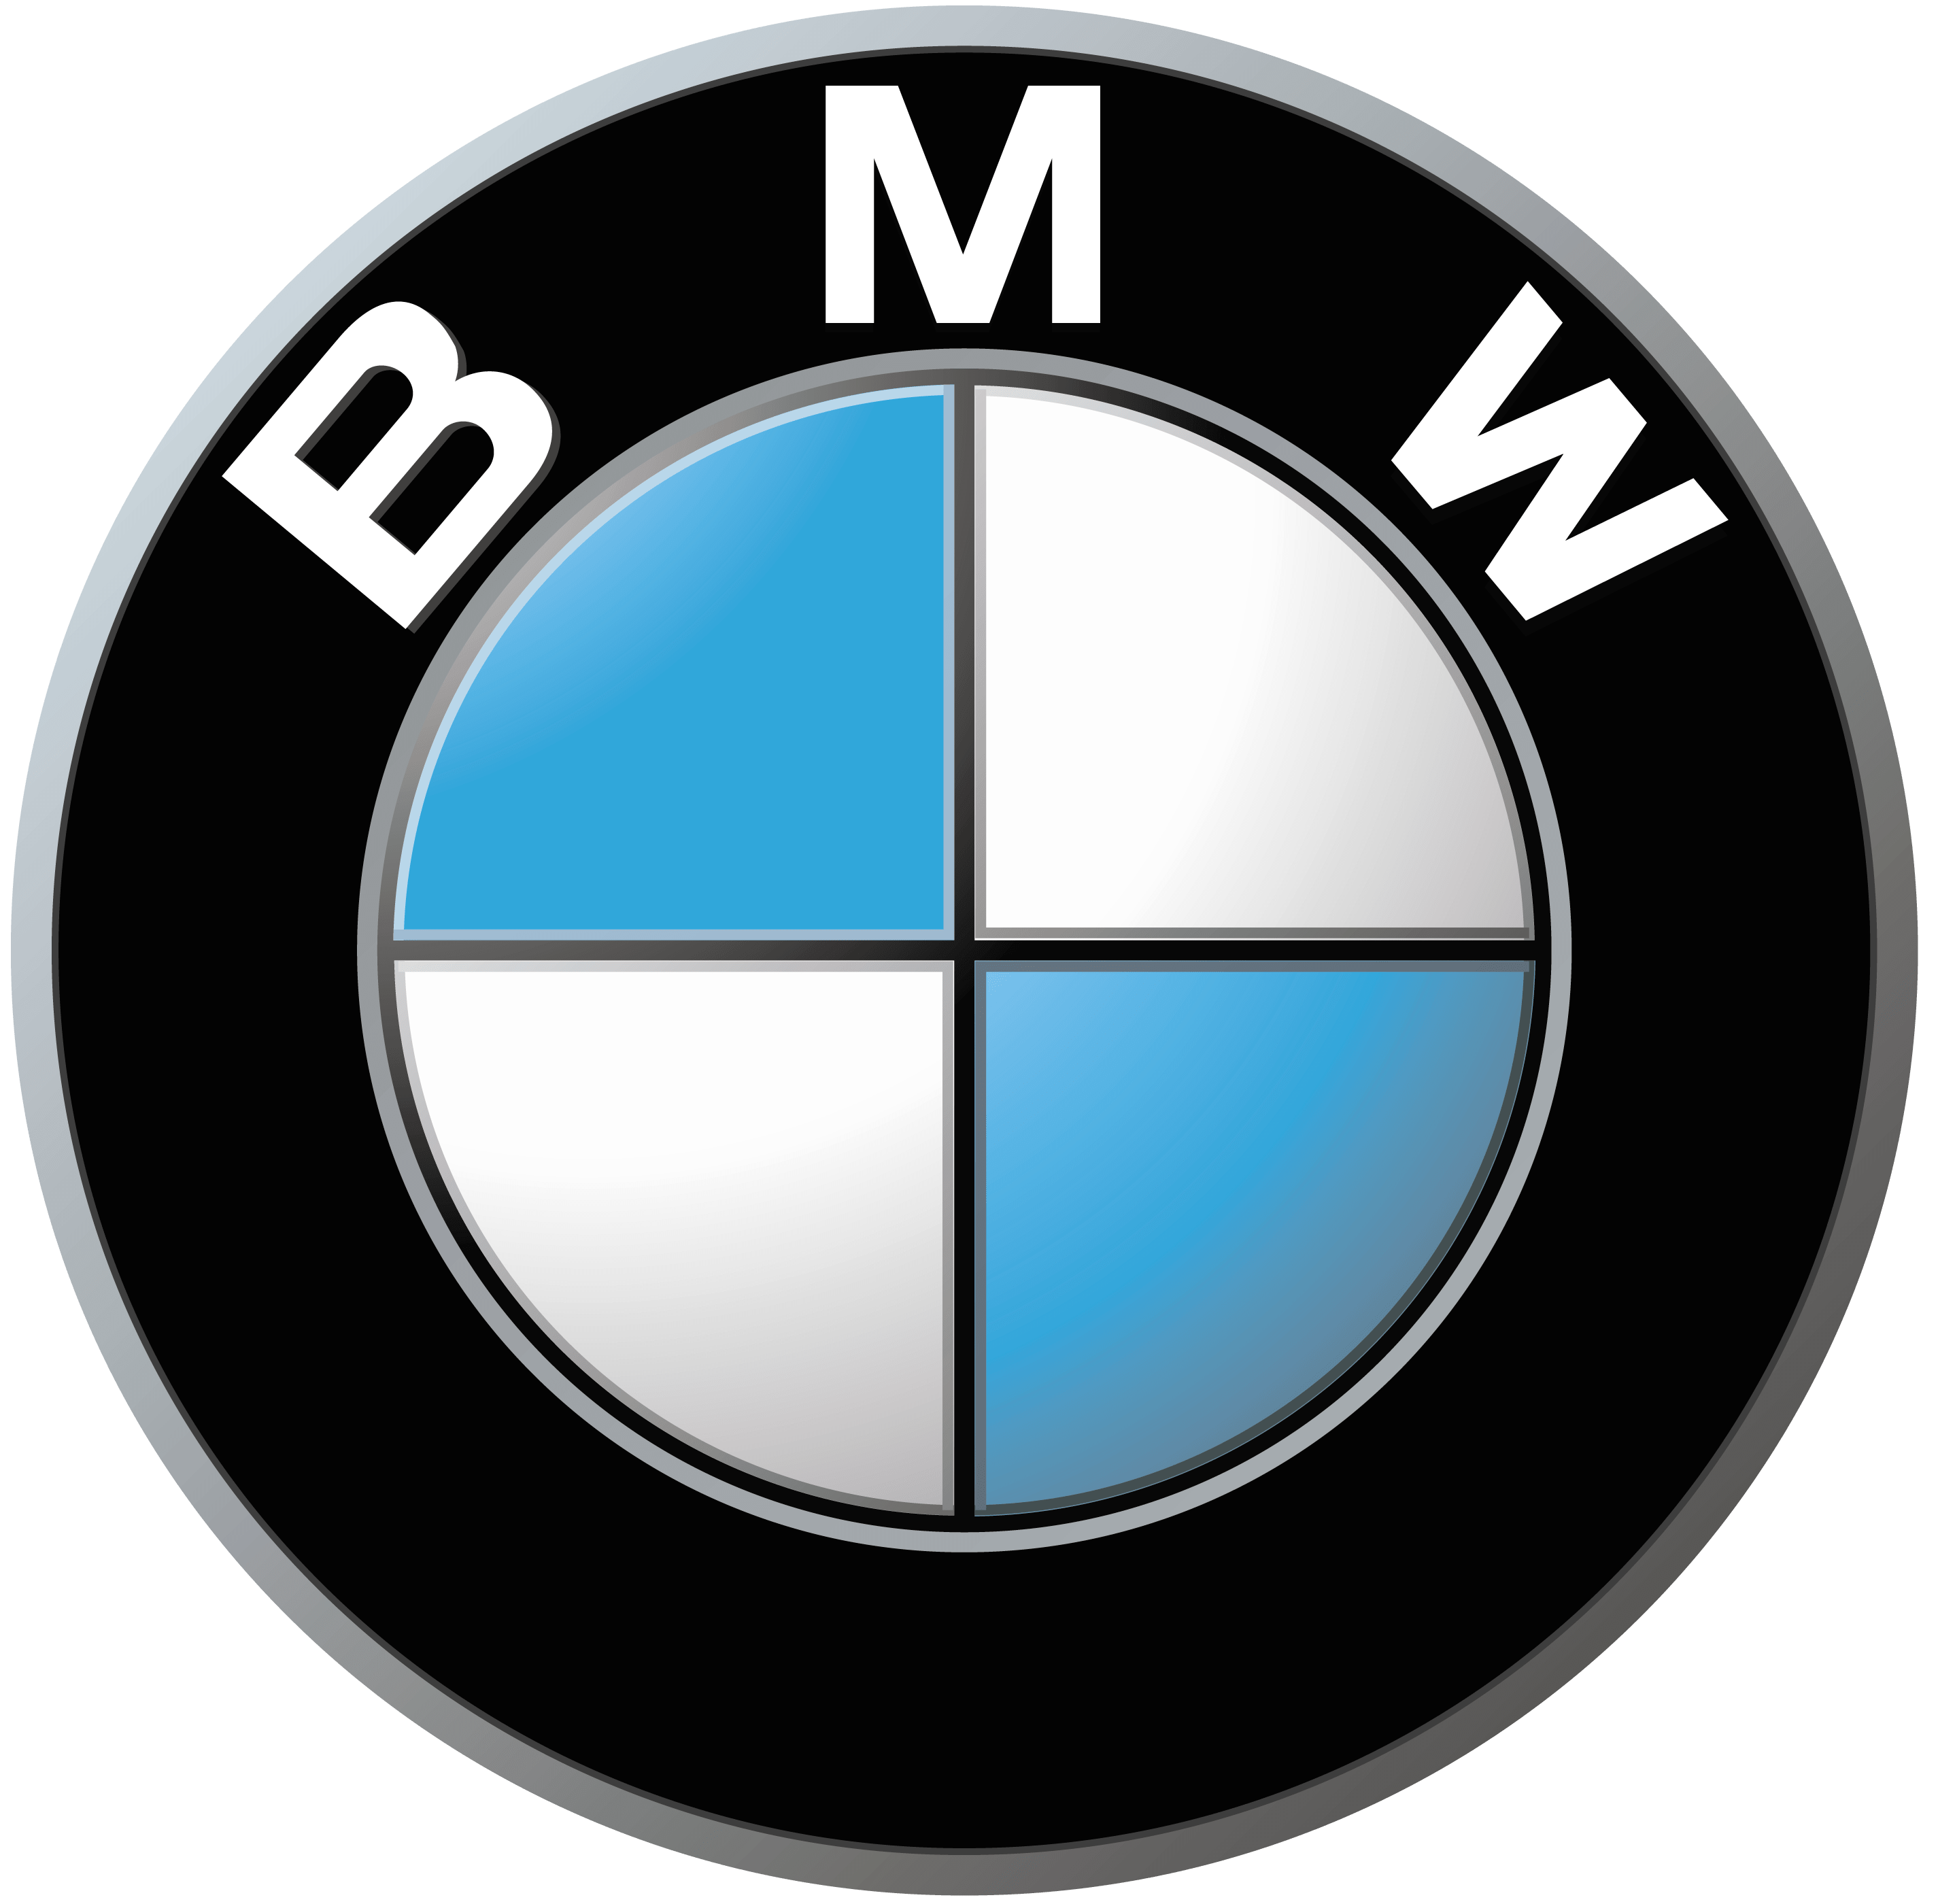 Bmw Logo Meaning Carbmw635csi Pinterest Bmw Logos And Cars